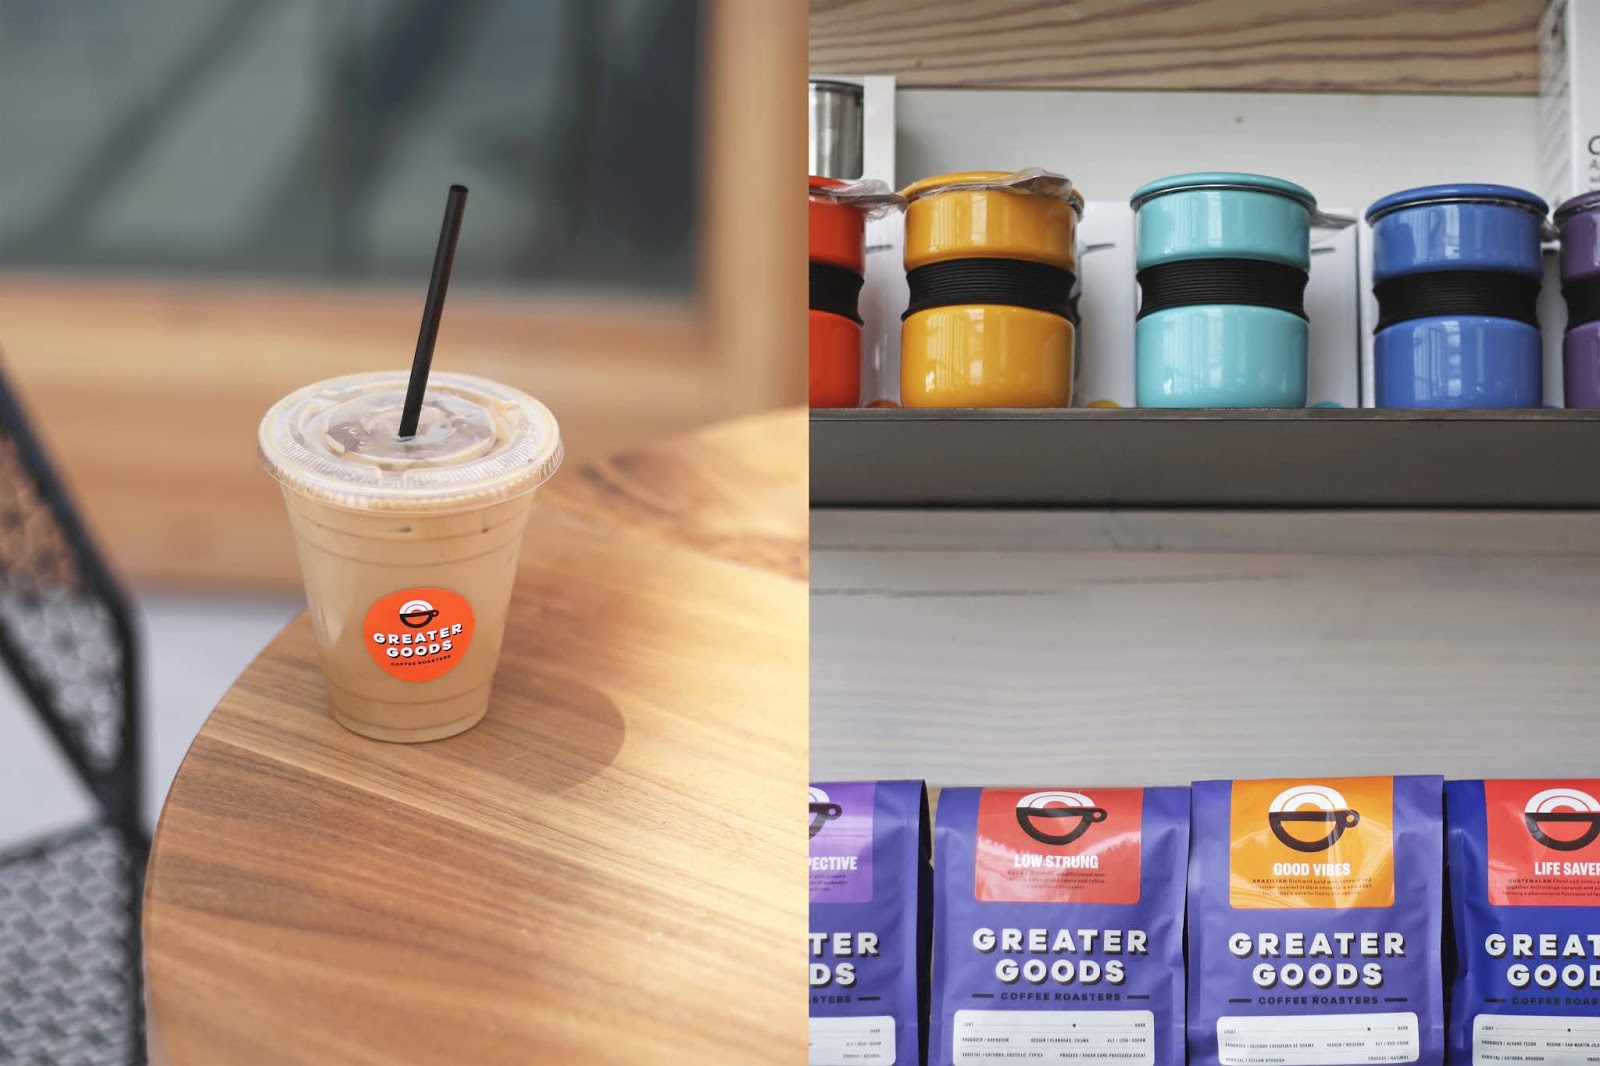 Greater Goods Coffee Roasters Austin, Iced Coffee, Cozy Coffee Shop, Coffee Shops Vibe